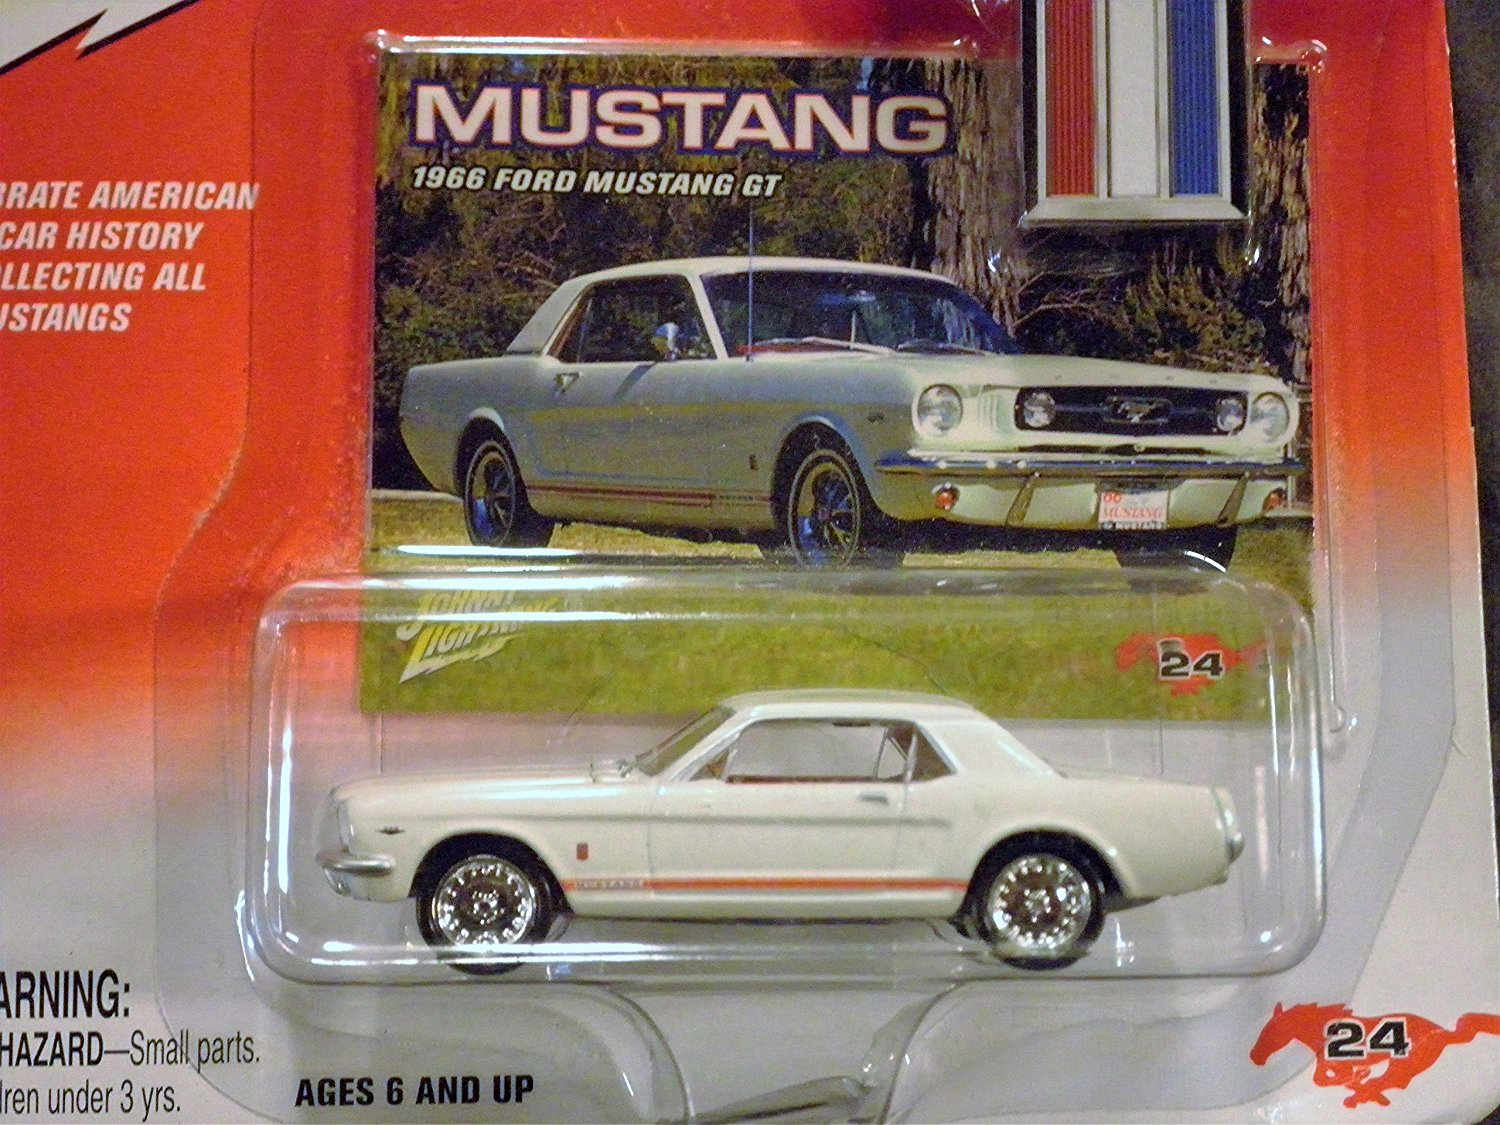 history of 1966 ford mustang